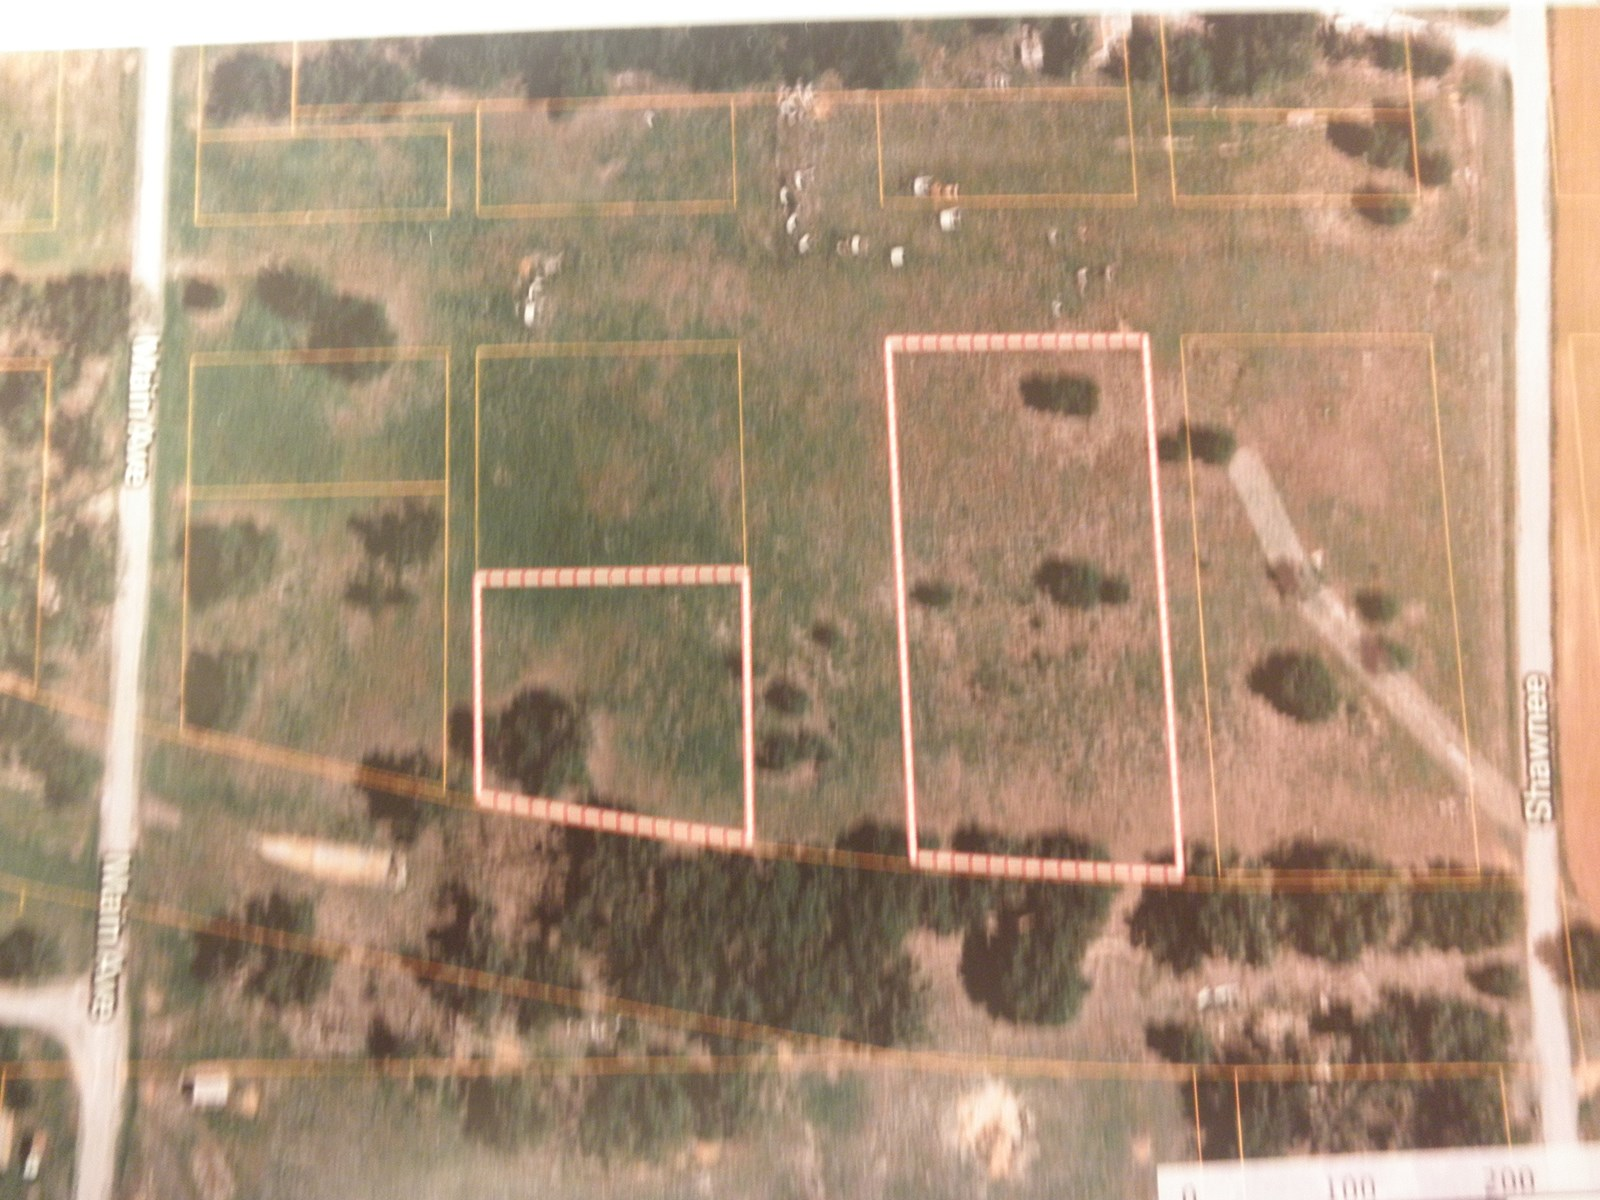 PRIME PROPERTY LOCATION ON WEST OKLAHOMA/TEXAS STATE LINES